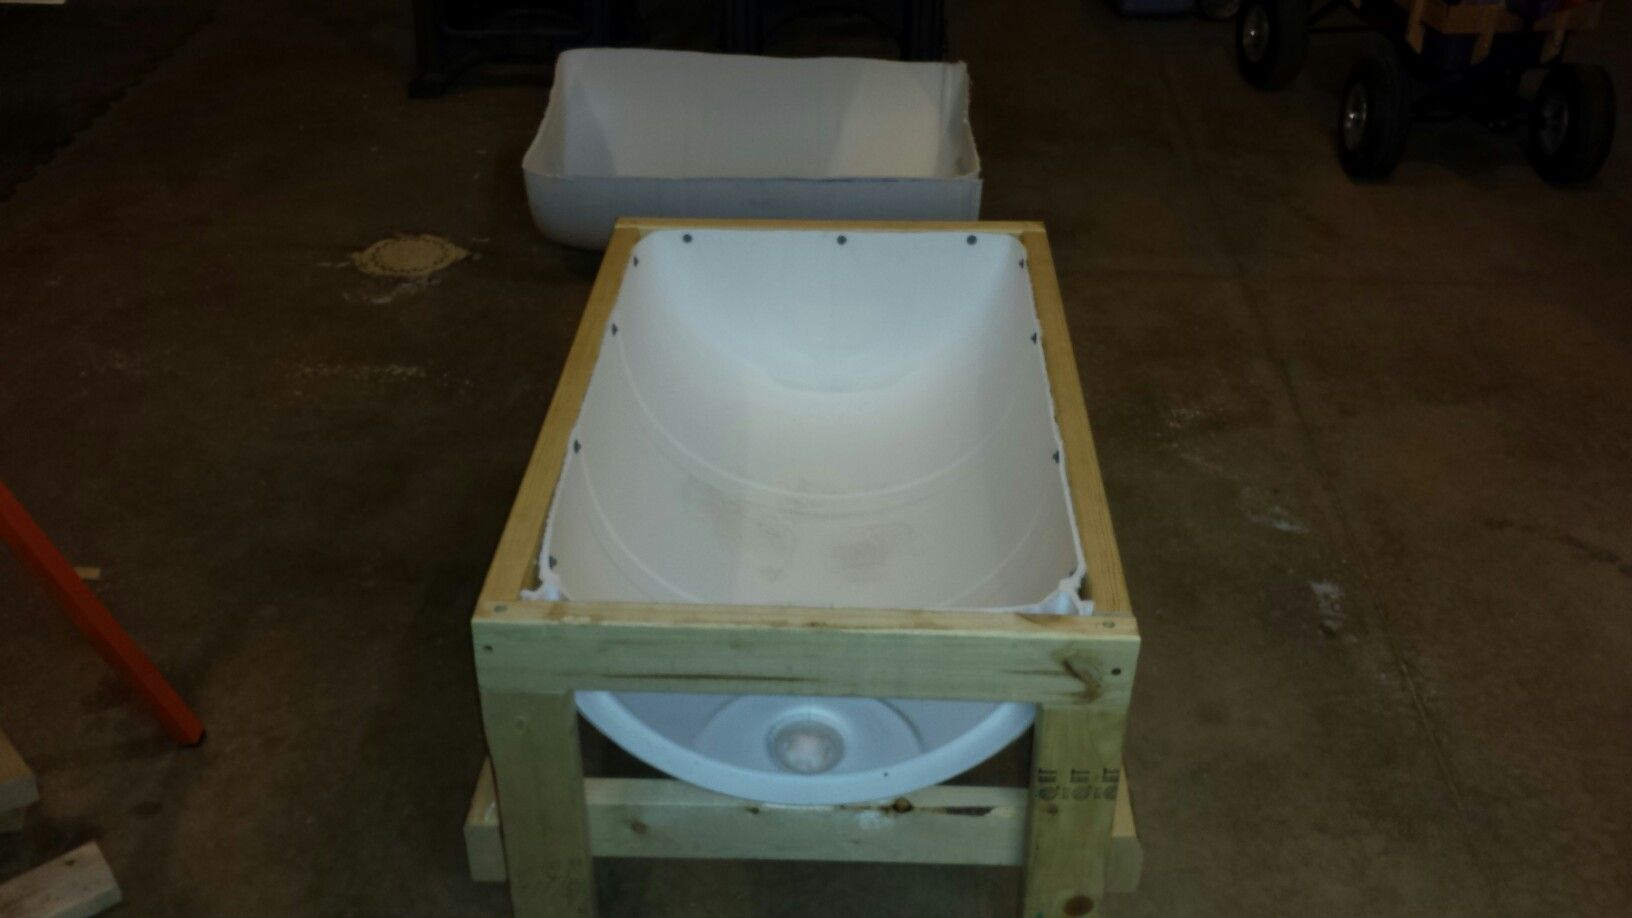 Grain feeder built from a 55 gallon barrel and 2x4s | cow